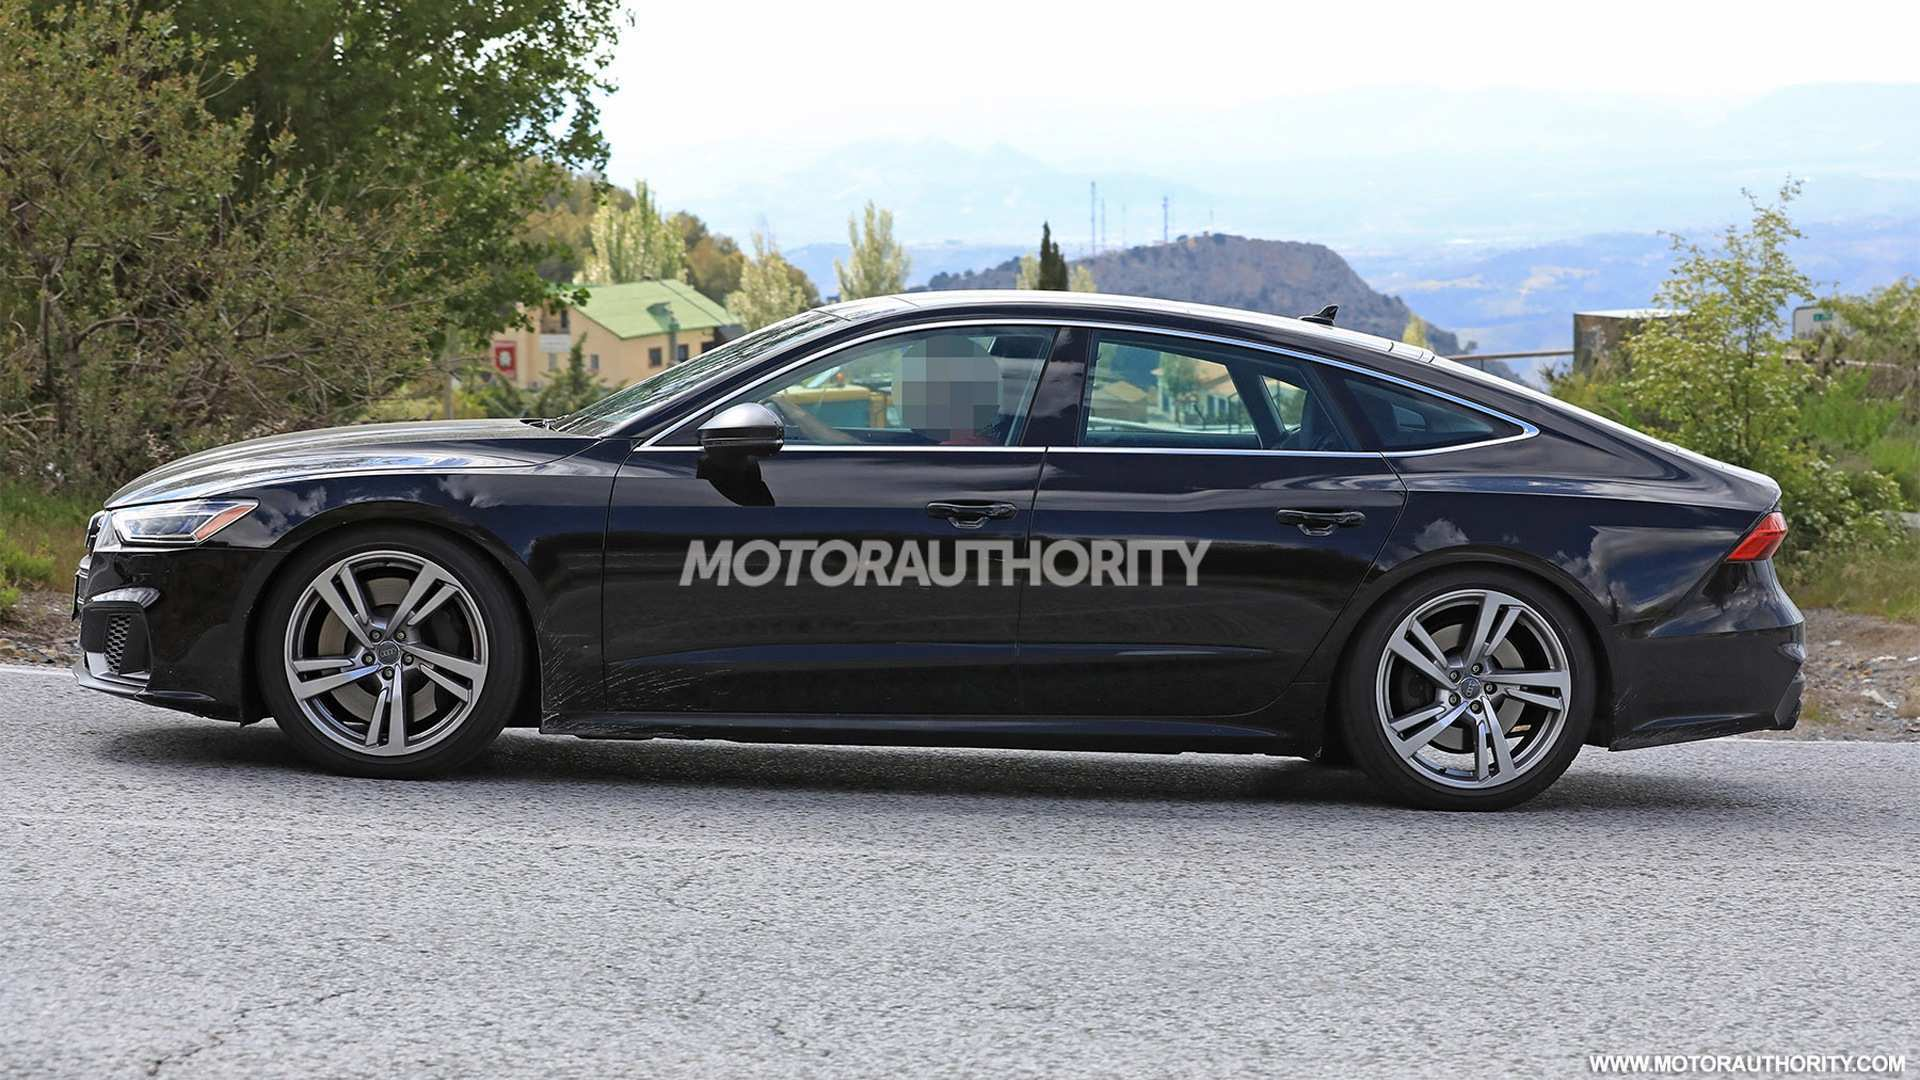 48 Great 2019 Audi A7 0 60 New Review for 2019 Audi A7 0 60